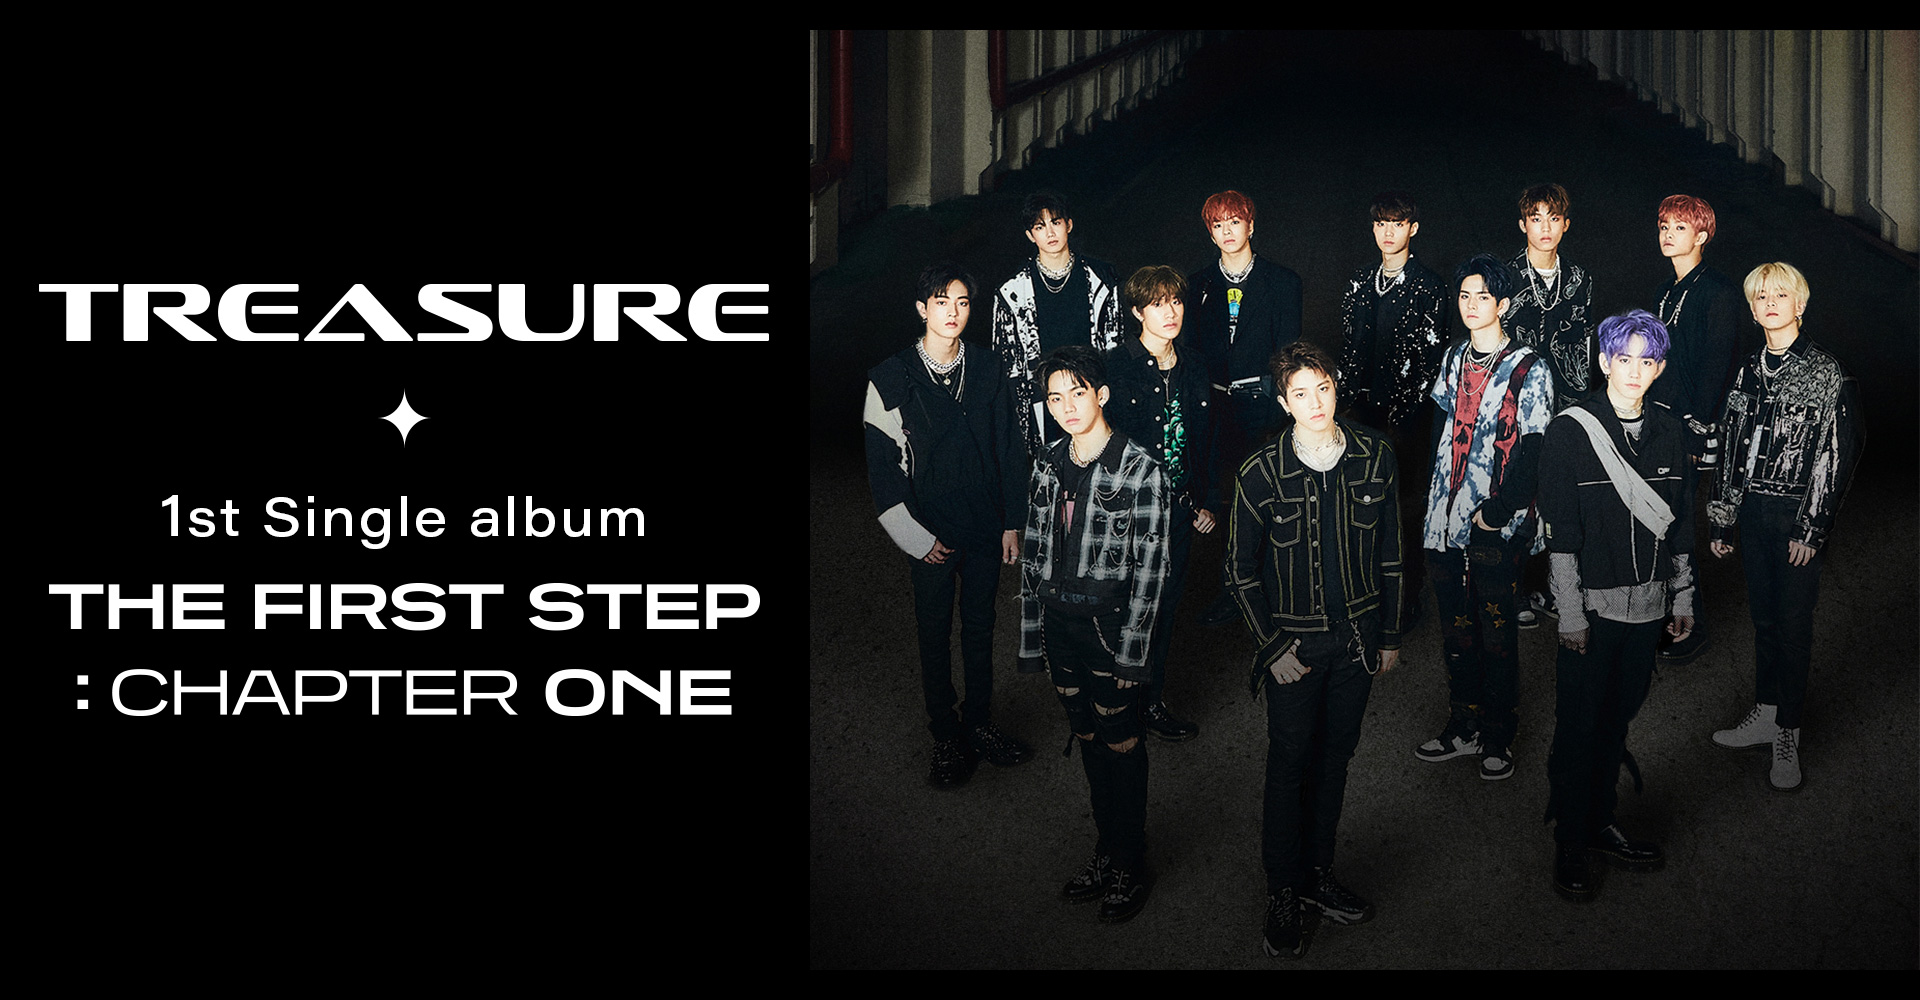 TREASURE 1st Single album [THE FIRST STEP : CHAPTER ONE] 2020.08.11 RELEASE